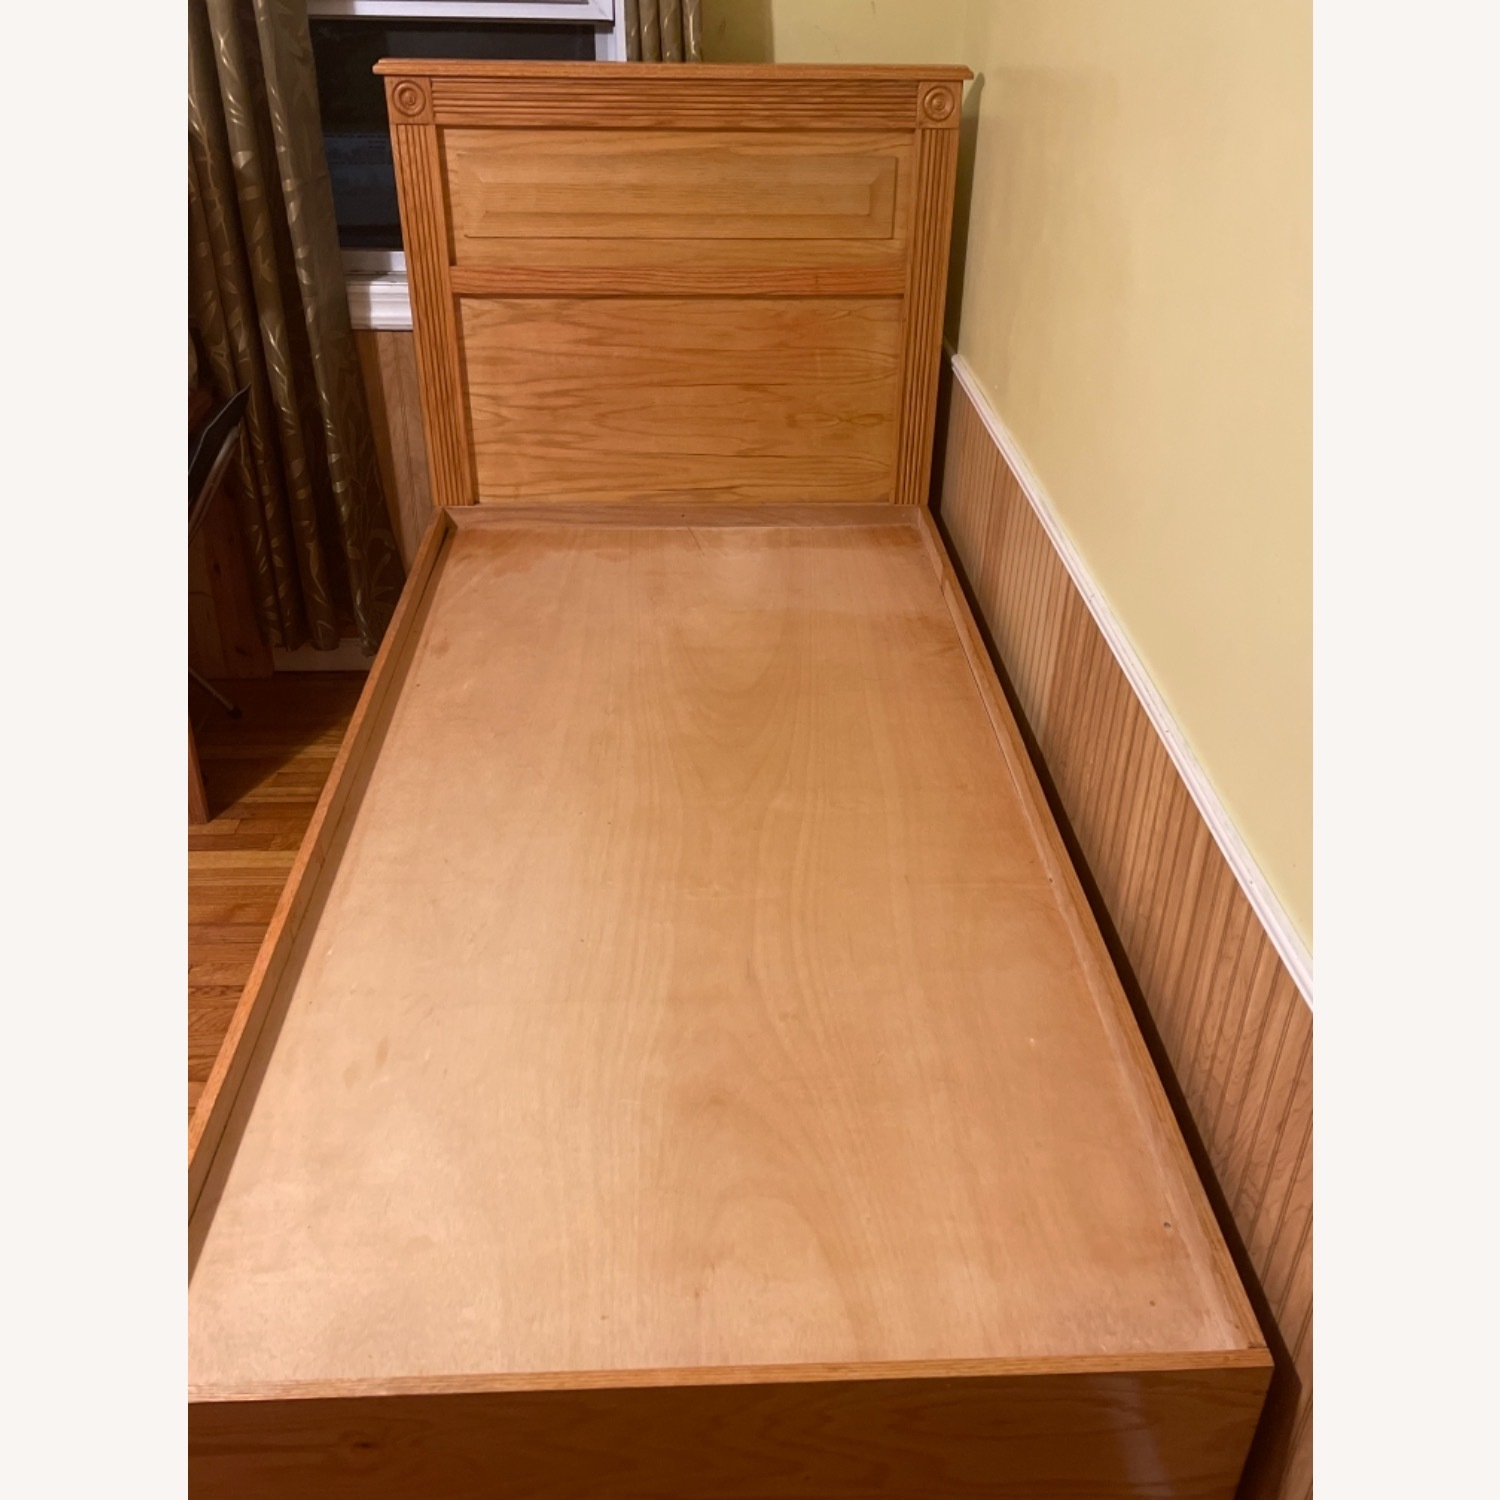 Natural Wood Colour Twin Bed Built-In Storage - image-2